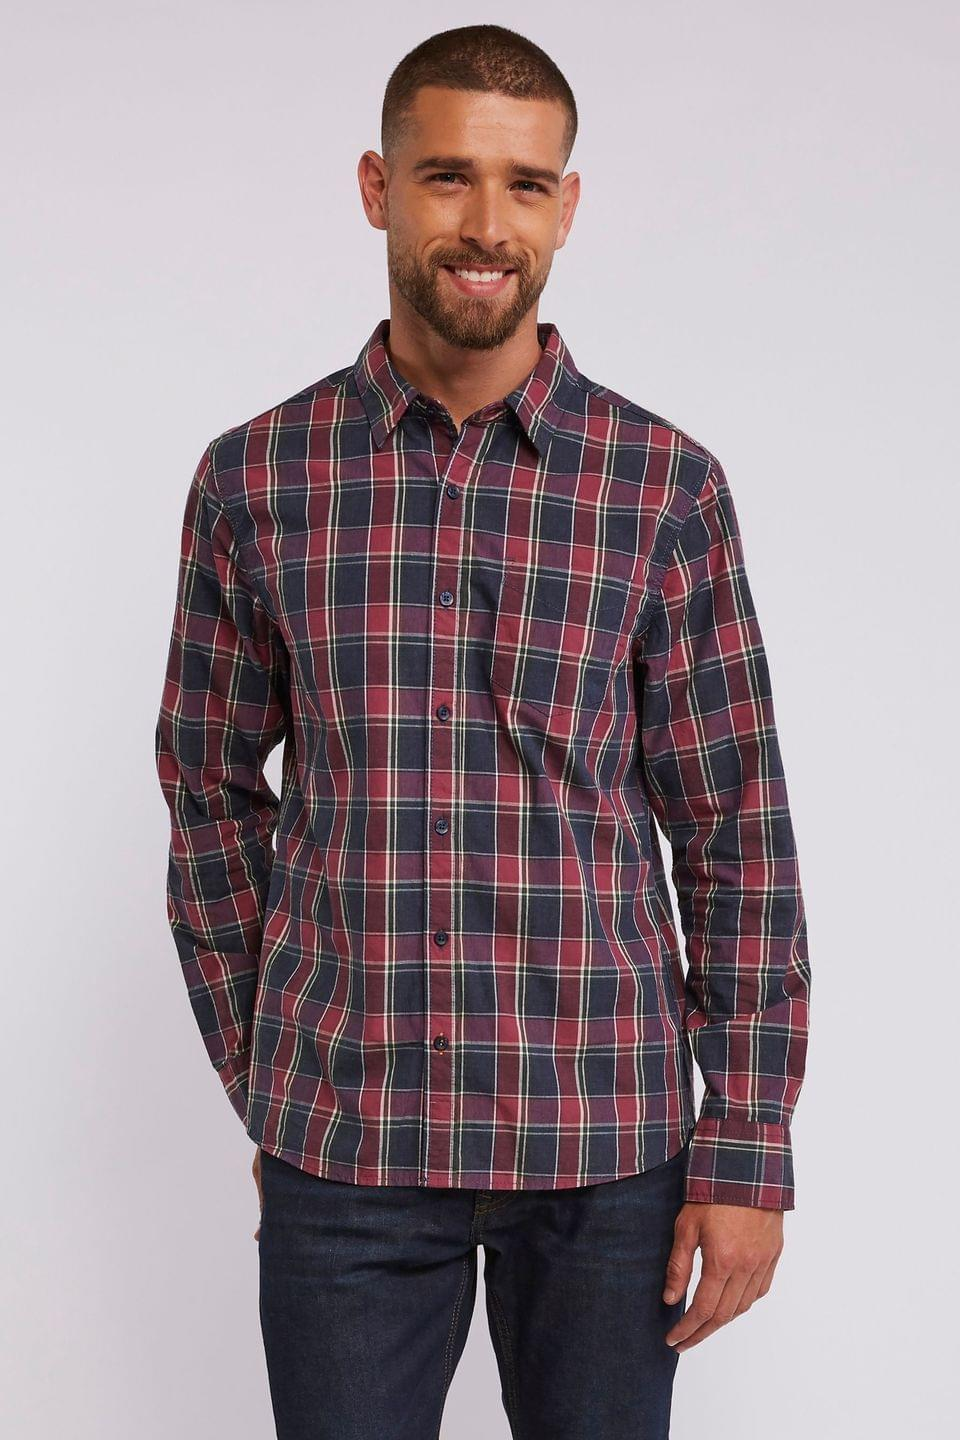 Men's FatFace Pink Chandler Check Shirt